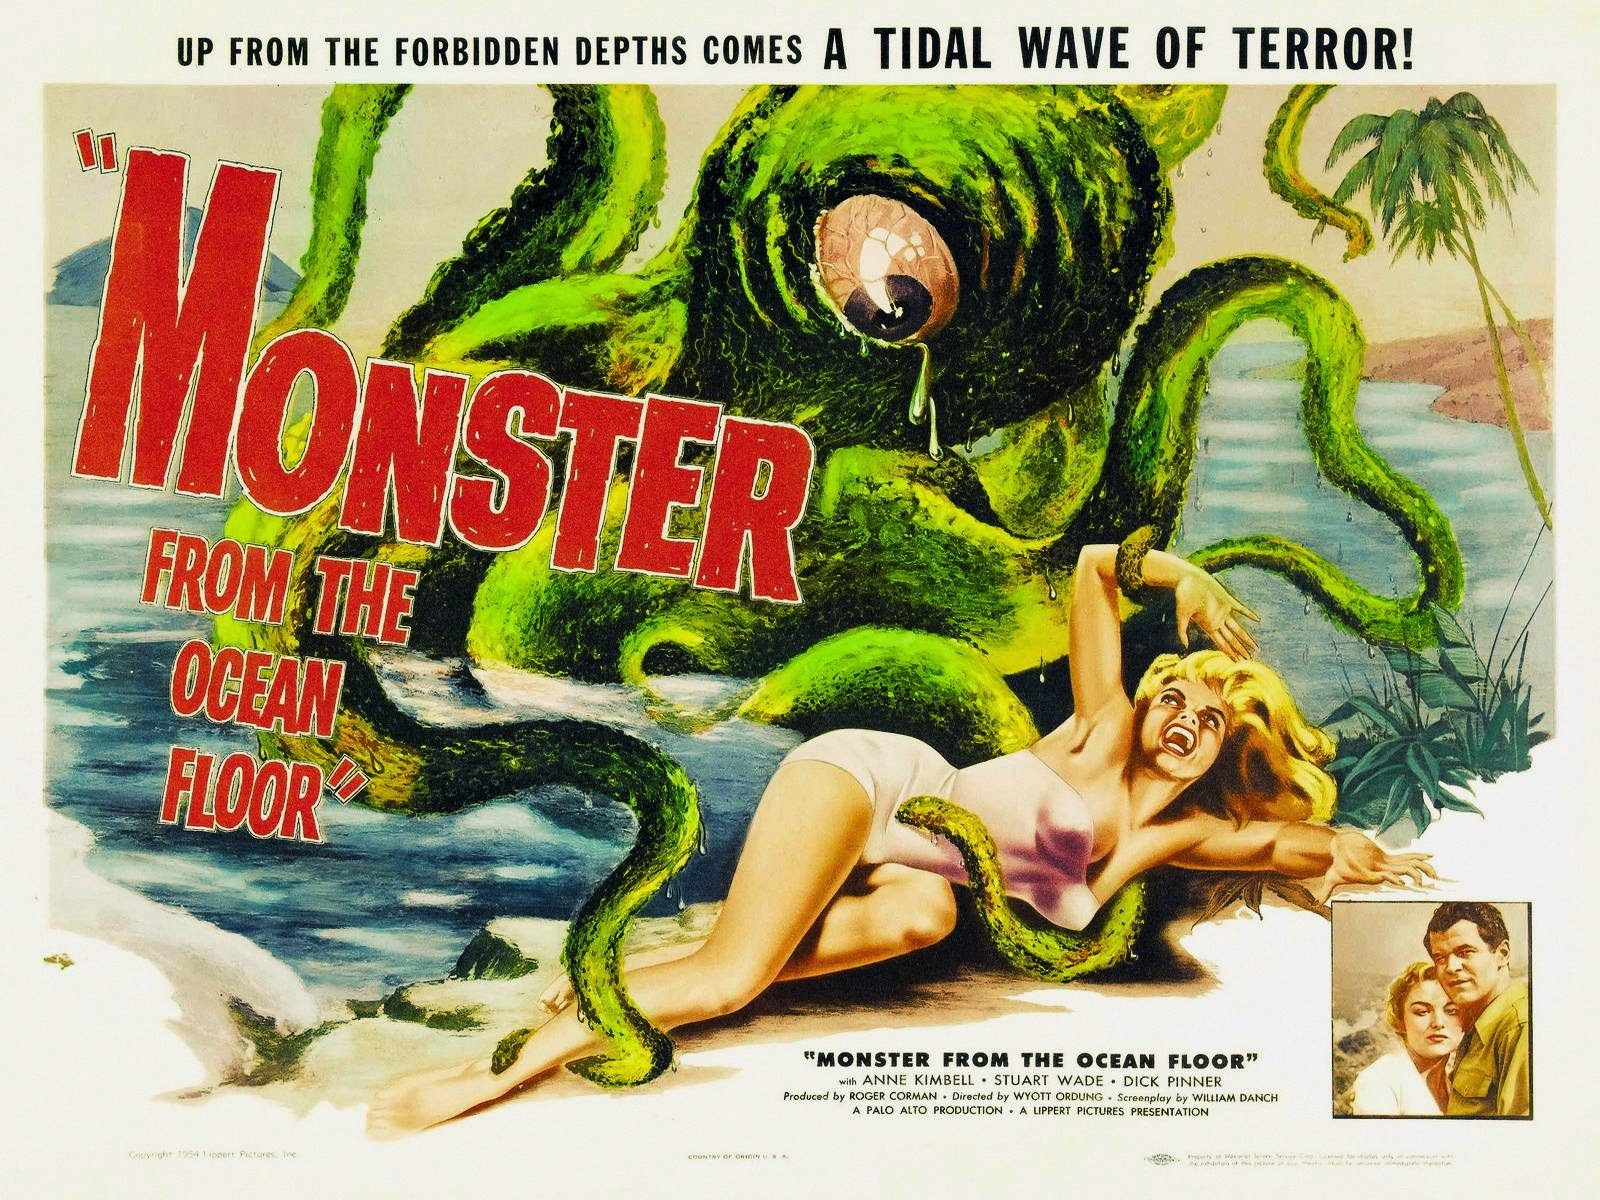 monster from the ocean floor poster